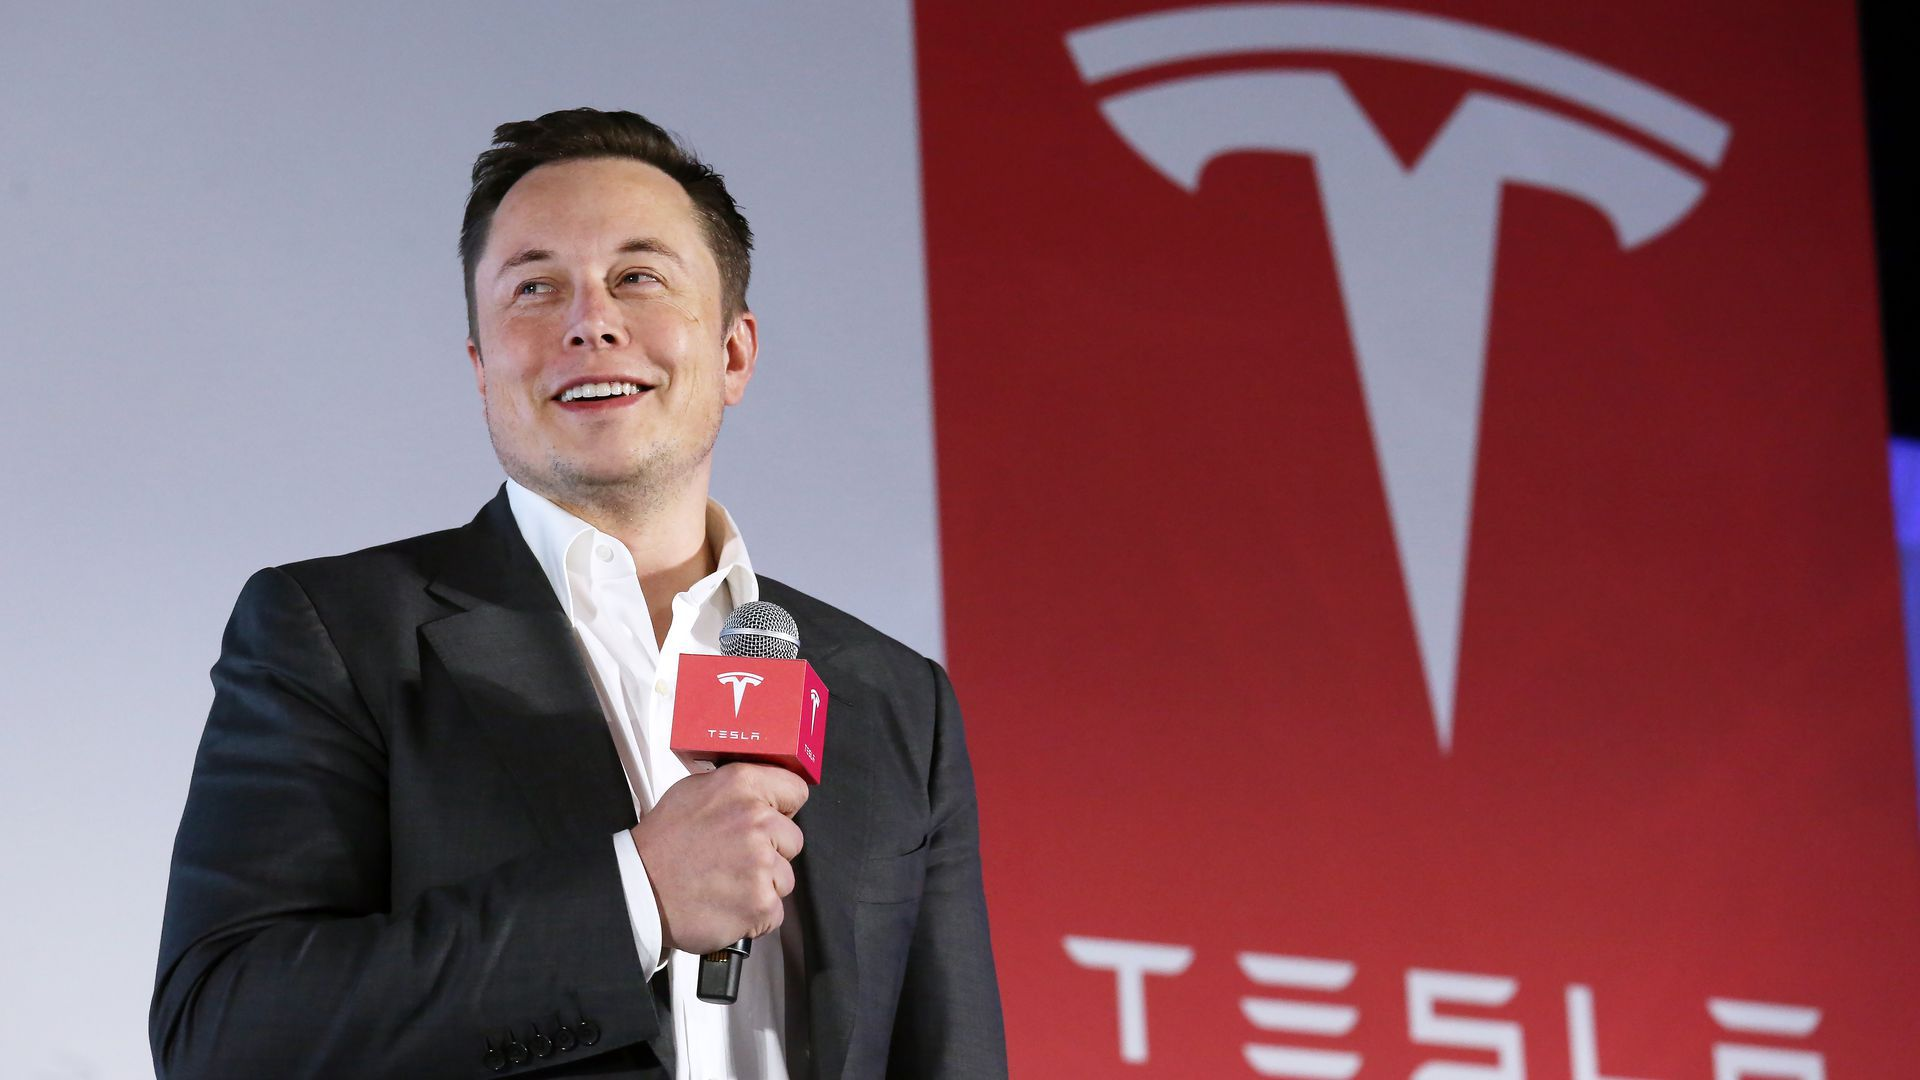 In this image, Elon Musk stands in a suit with a microphone in front of a red sign depicting the Tesla logo.